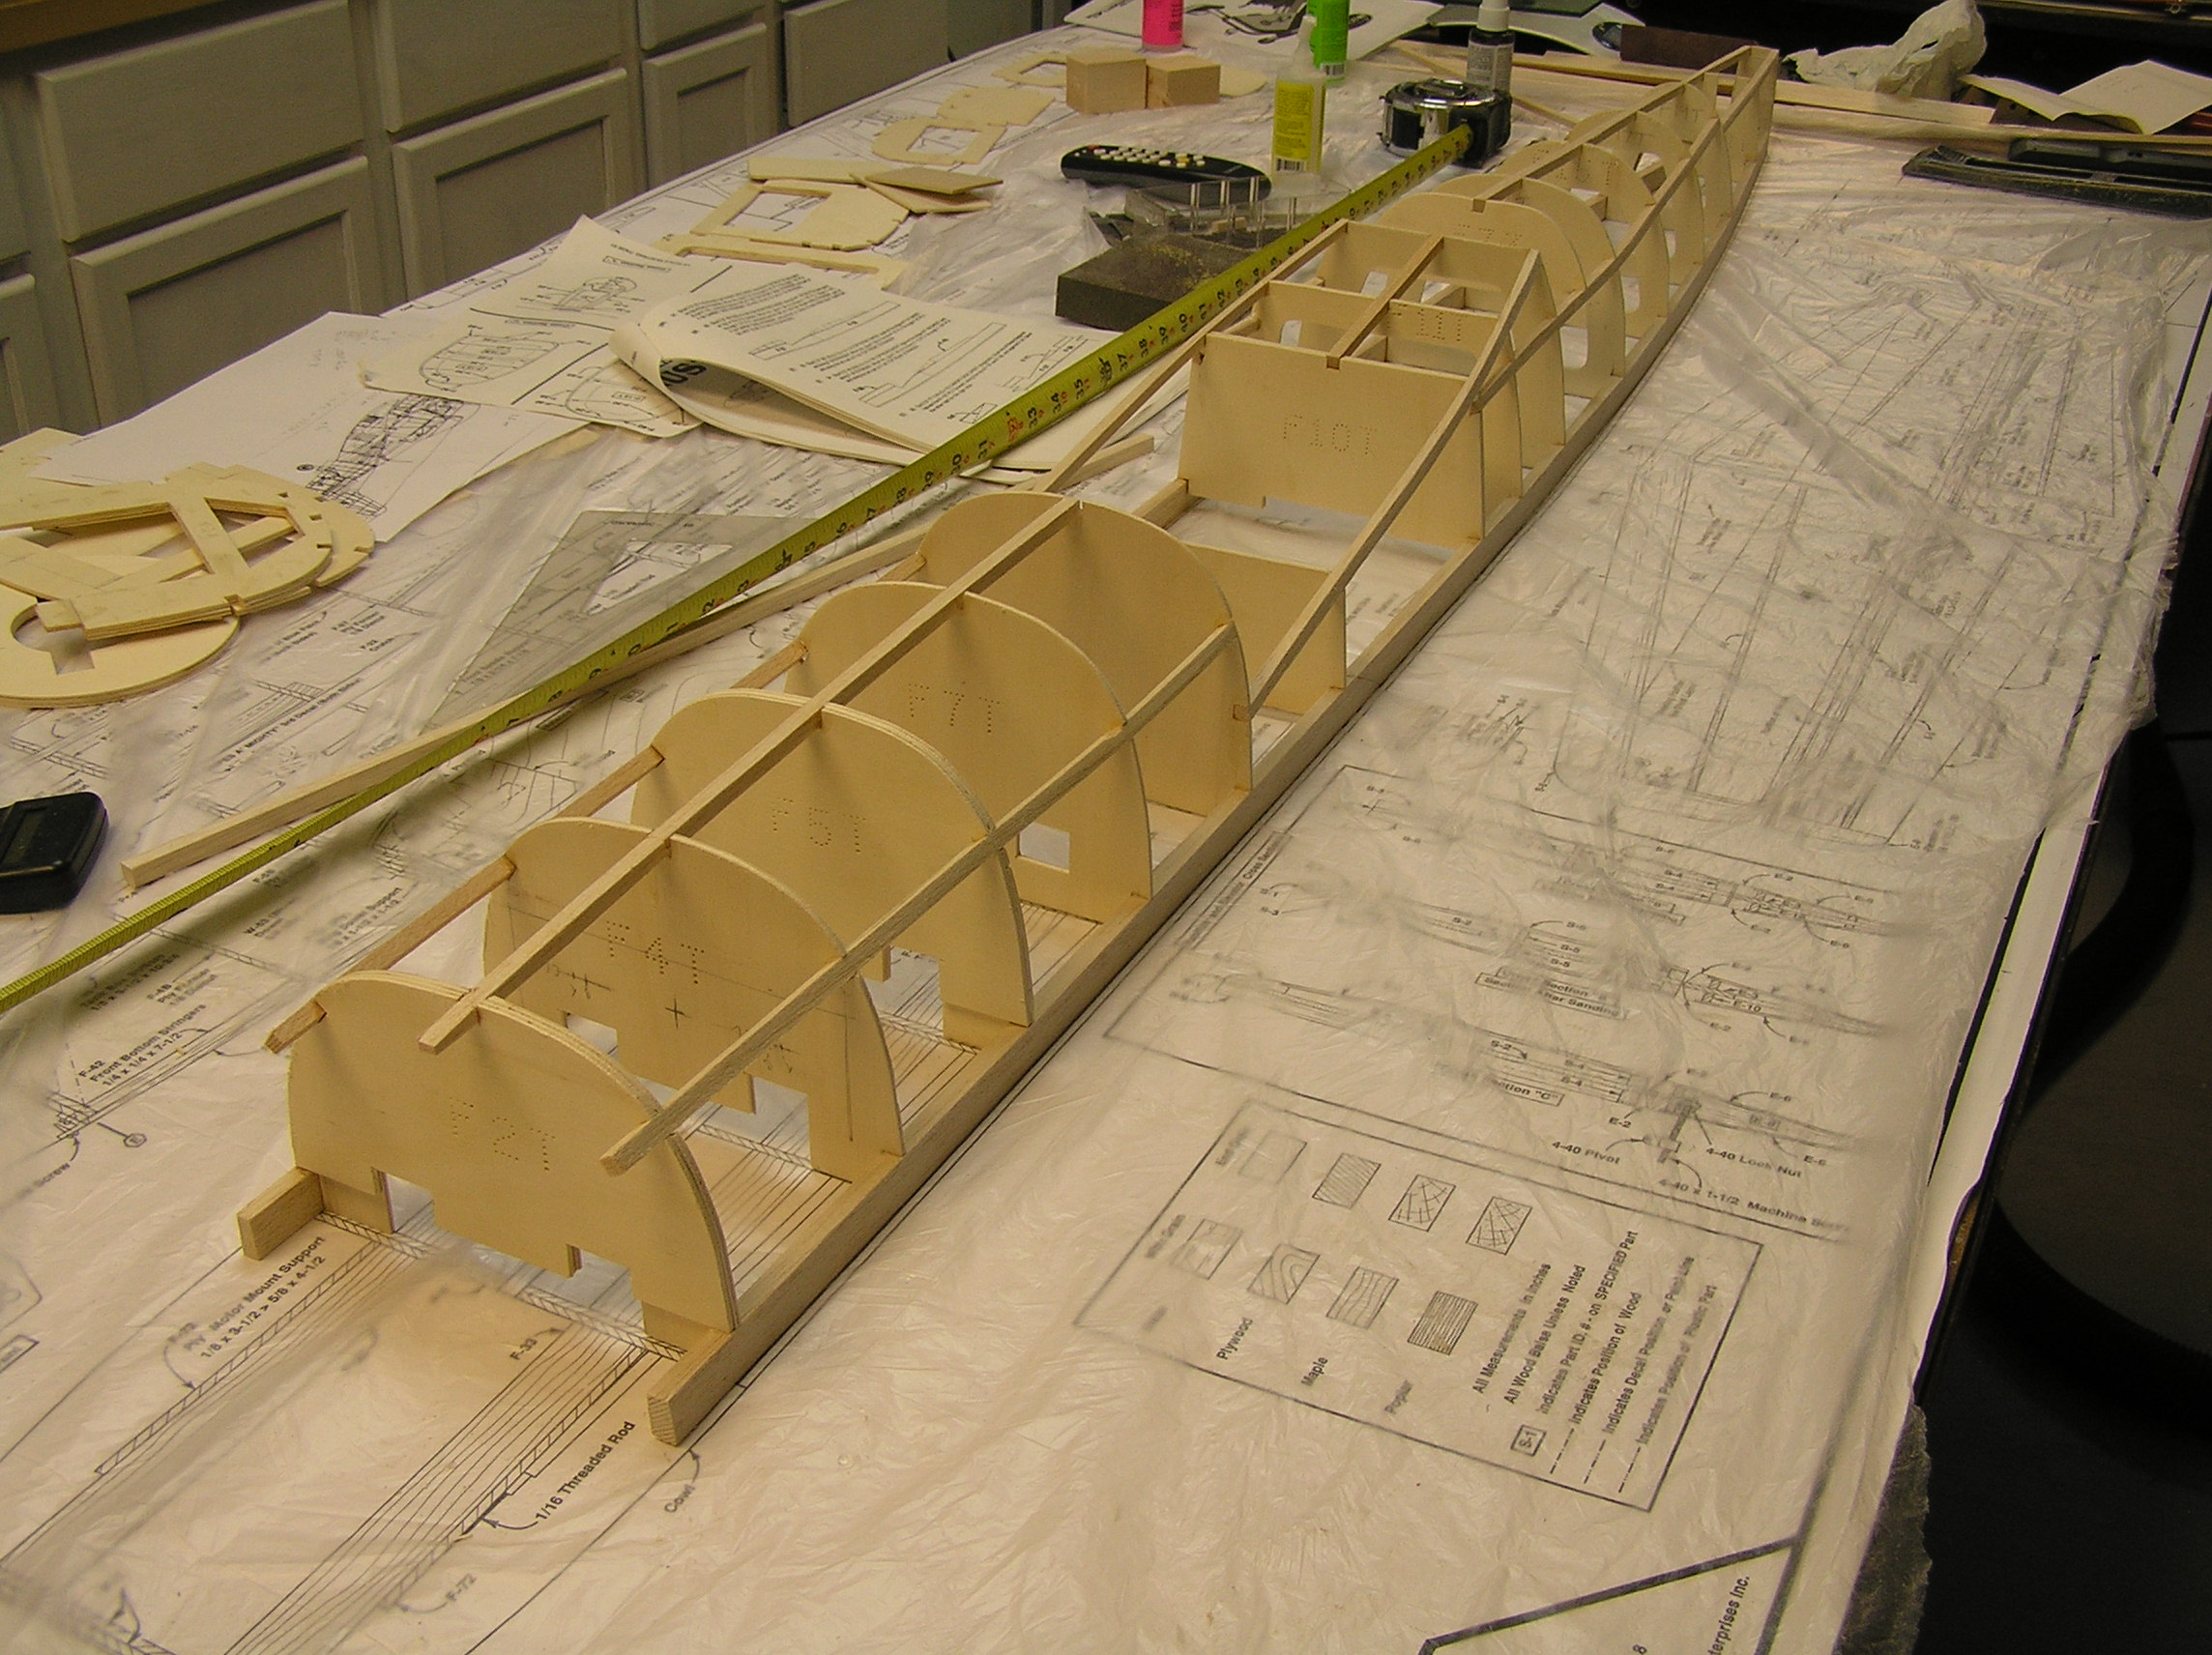 Click image for larger version  Name:E1 Top Fuselage.JPG Views:105 Size:774.7 KB ID:2072775